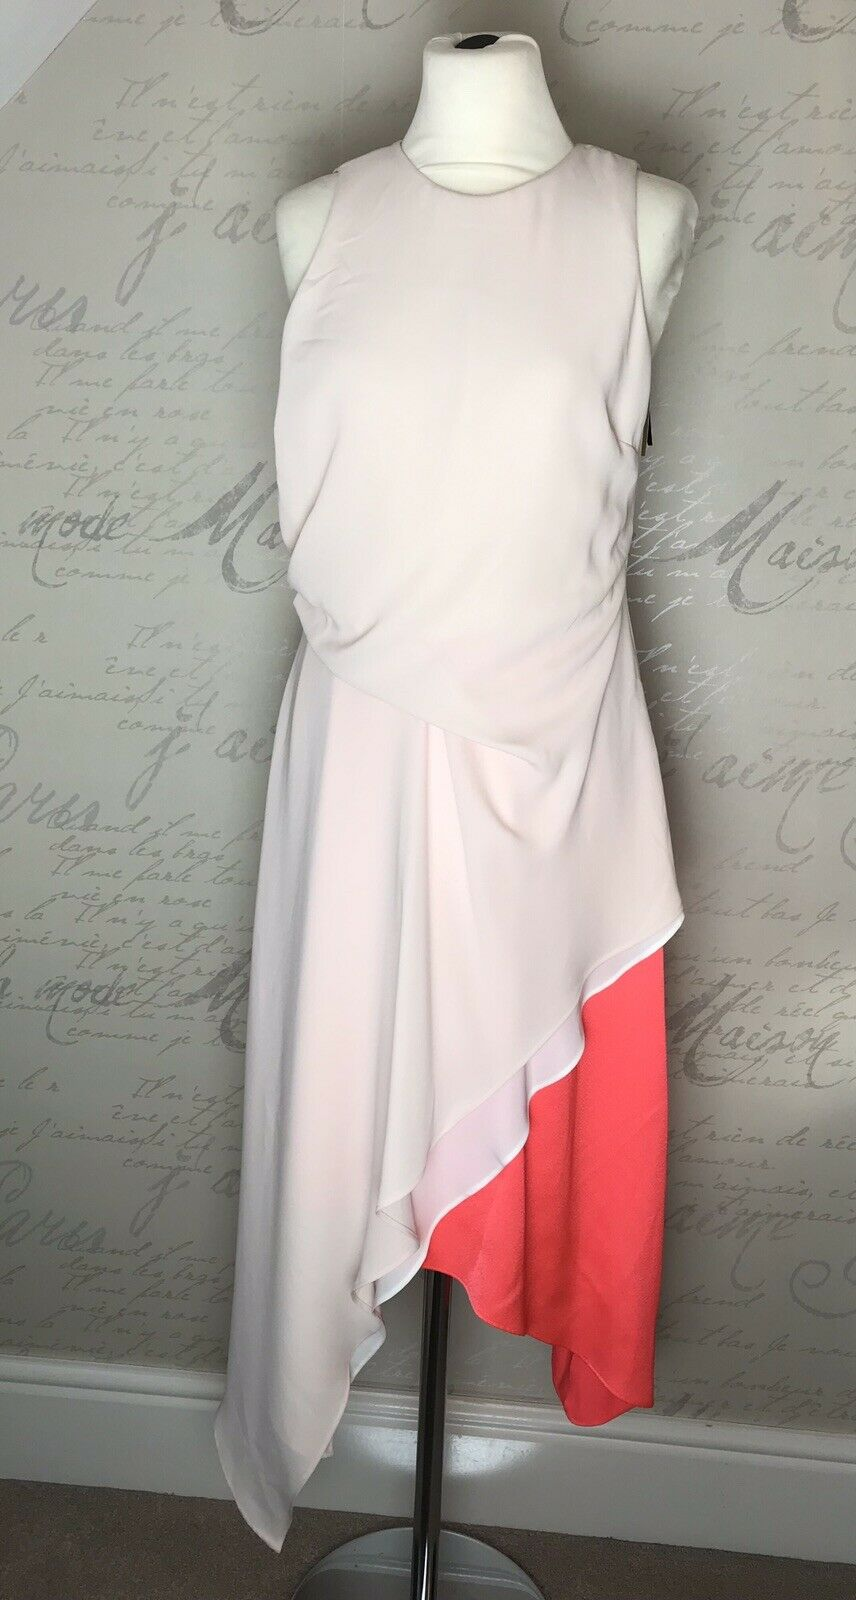 Coast Peach & Coral Fancy Summer Ascot Races Wedding Cheltenham Dress Size 10